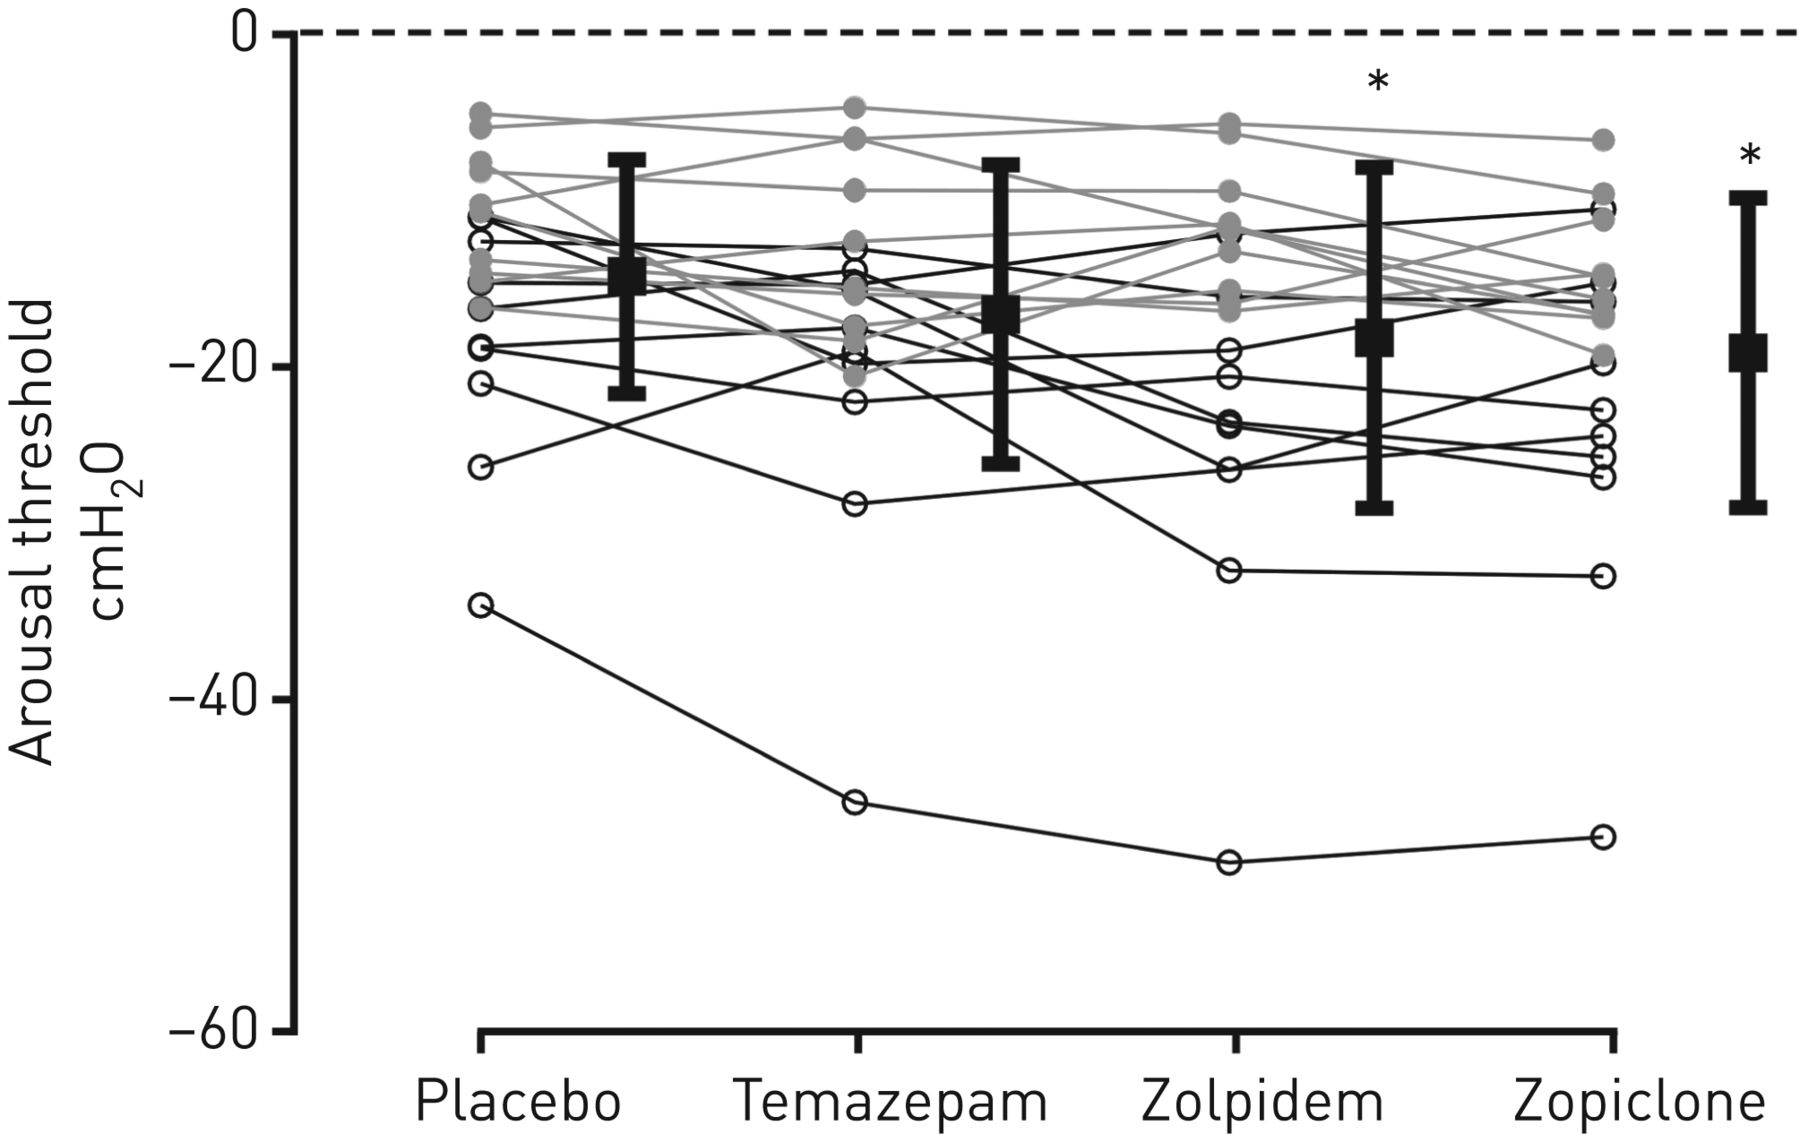 Role of common hypnotics on the phenotypic causes of